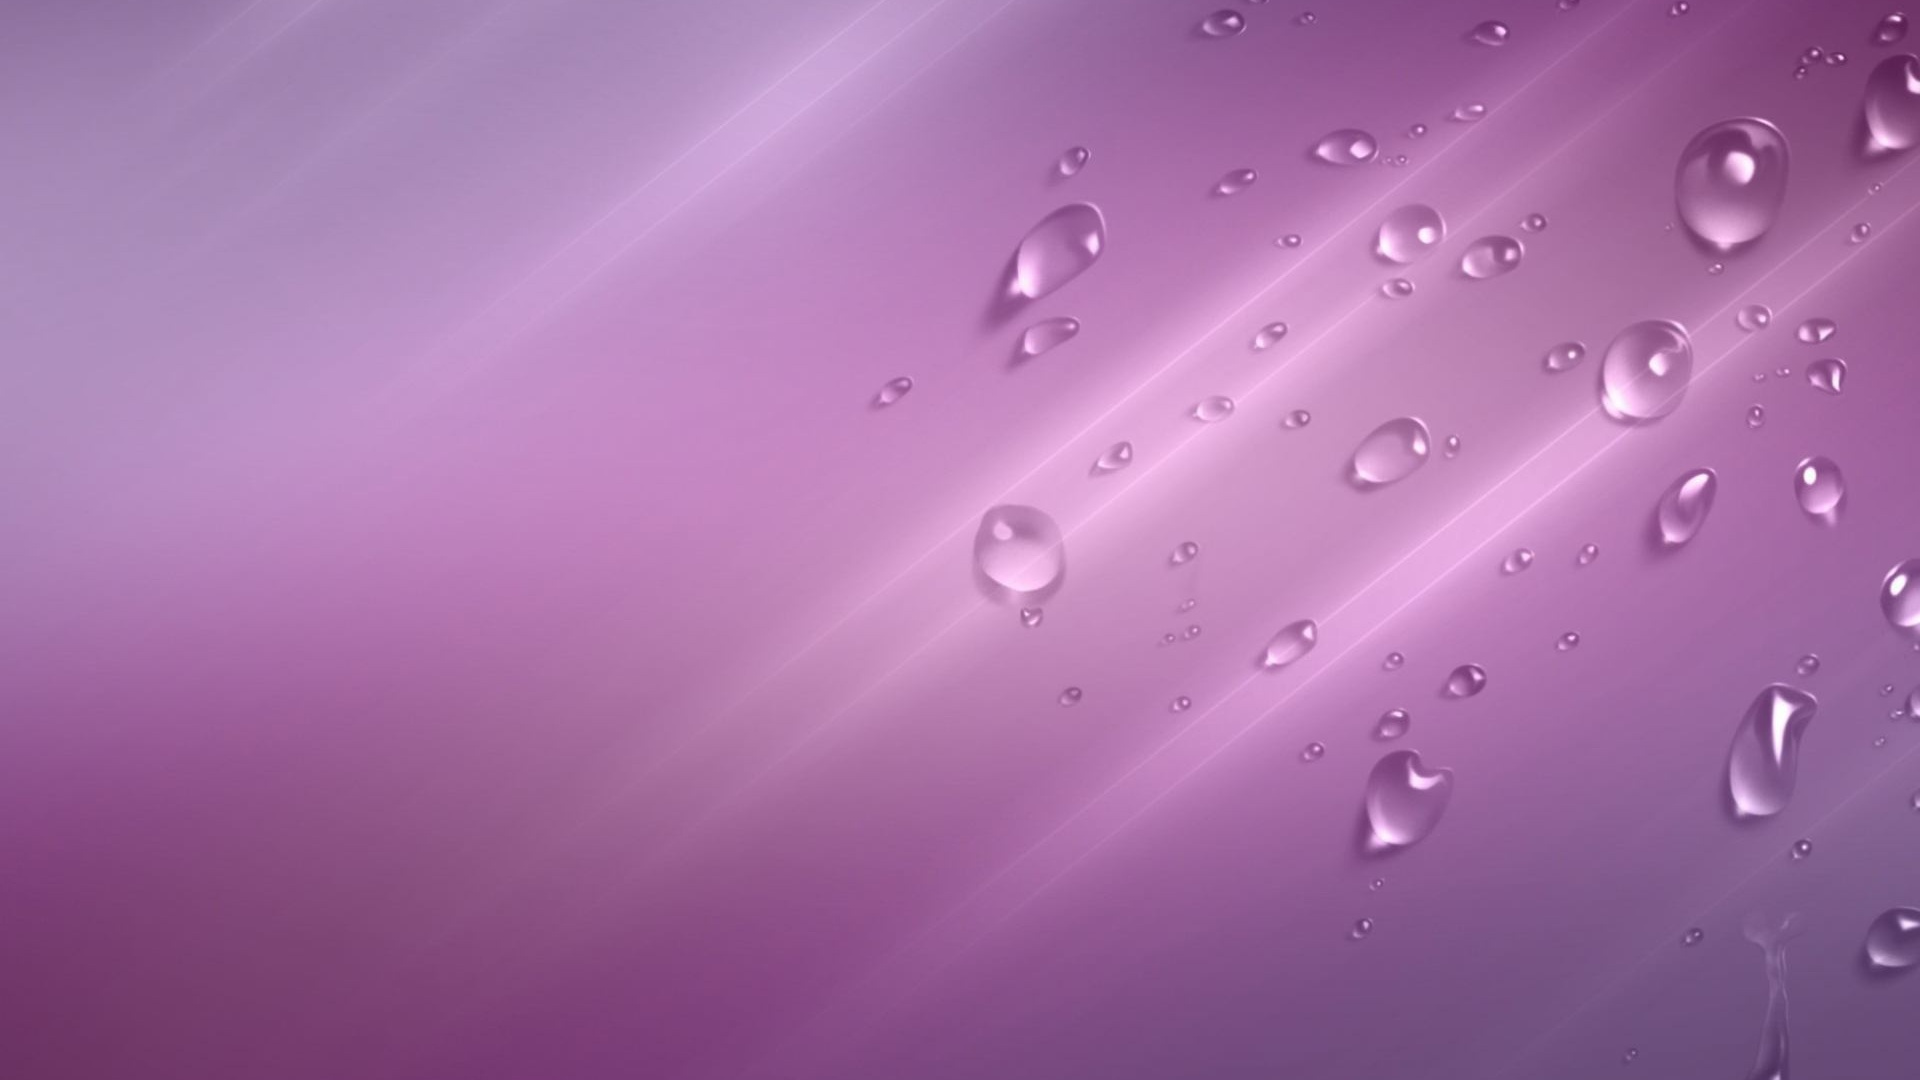 plain wallpapers hd a28